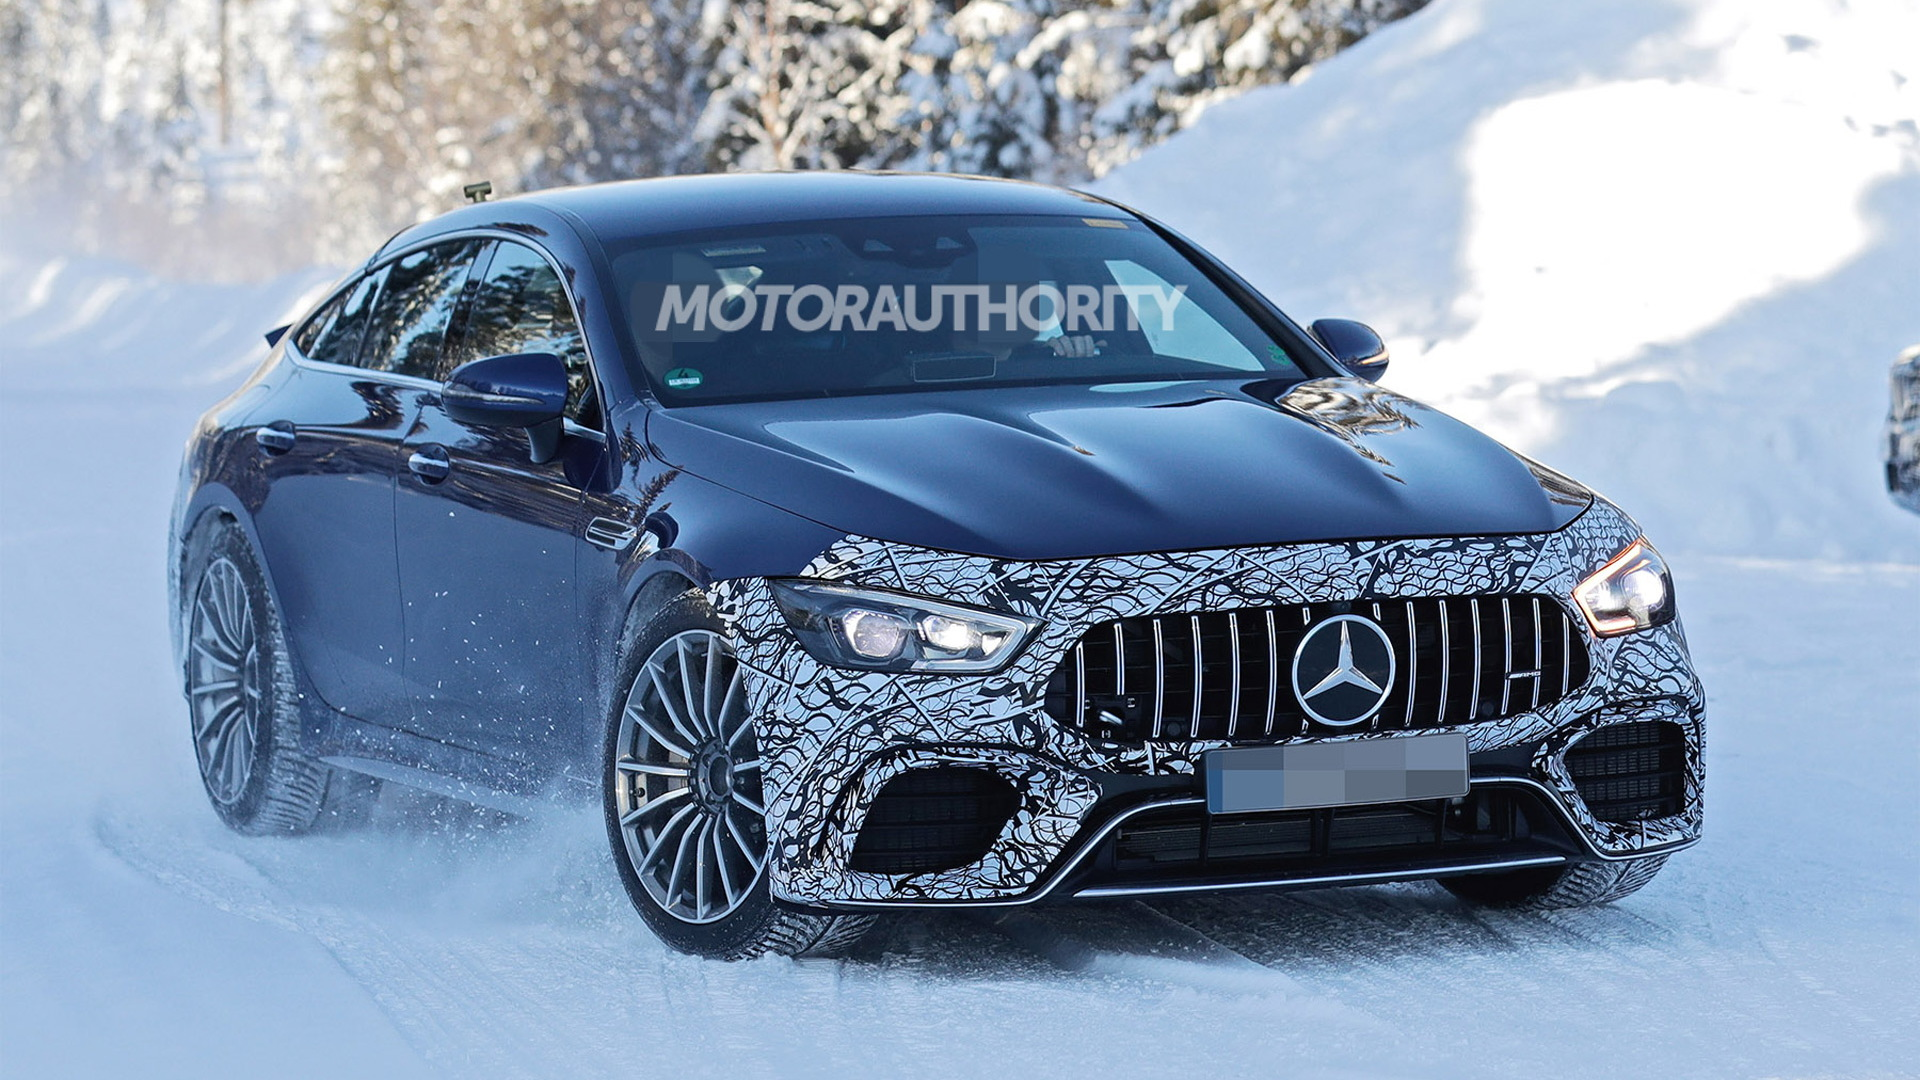 2021 Mercedes-AMG GT 73 EQ Performance 4-Door Coupe spy shots - Photo credit: S. Baldauf/SB-Medien